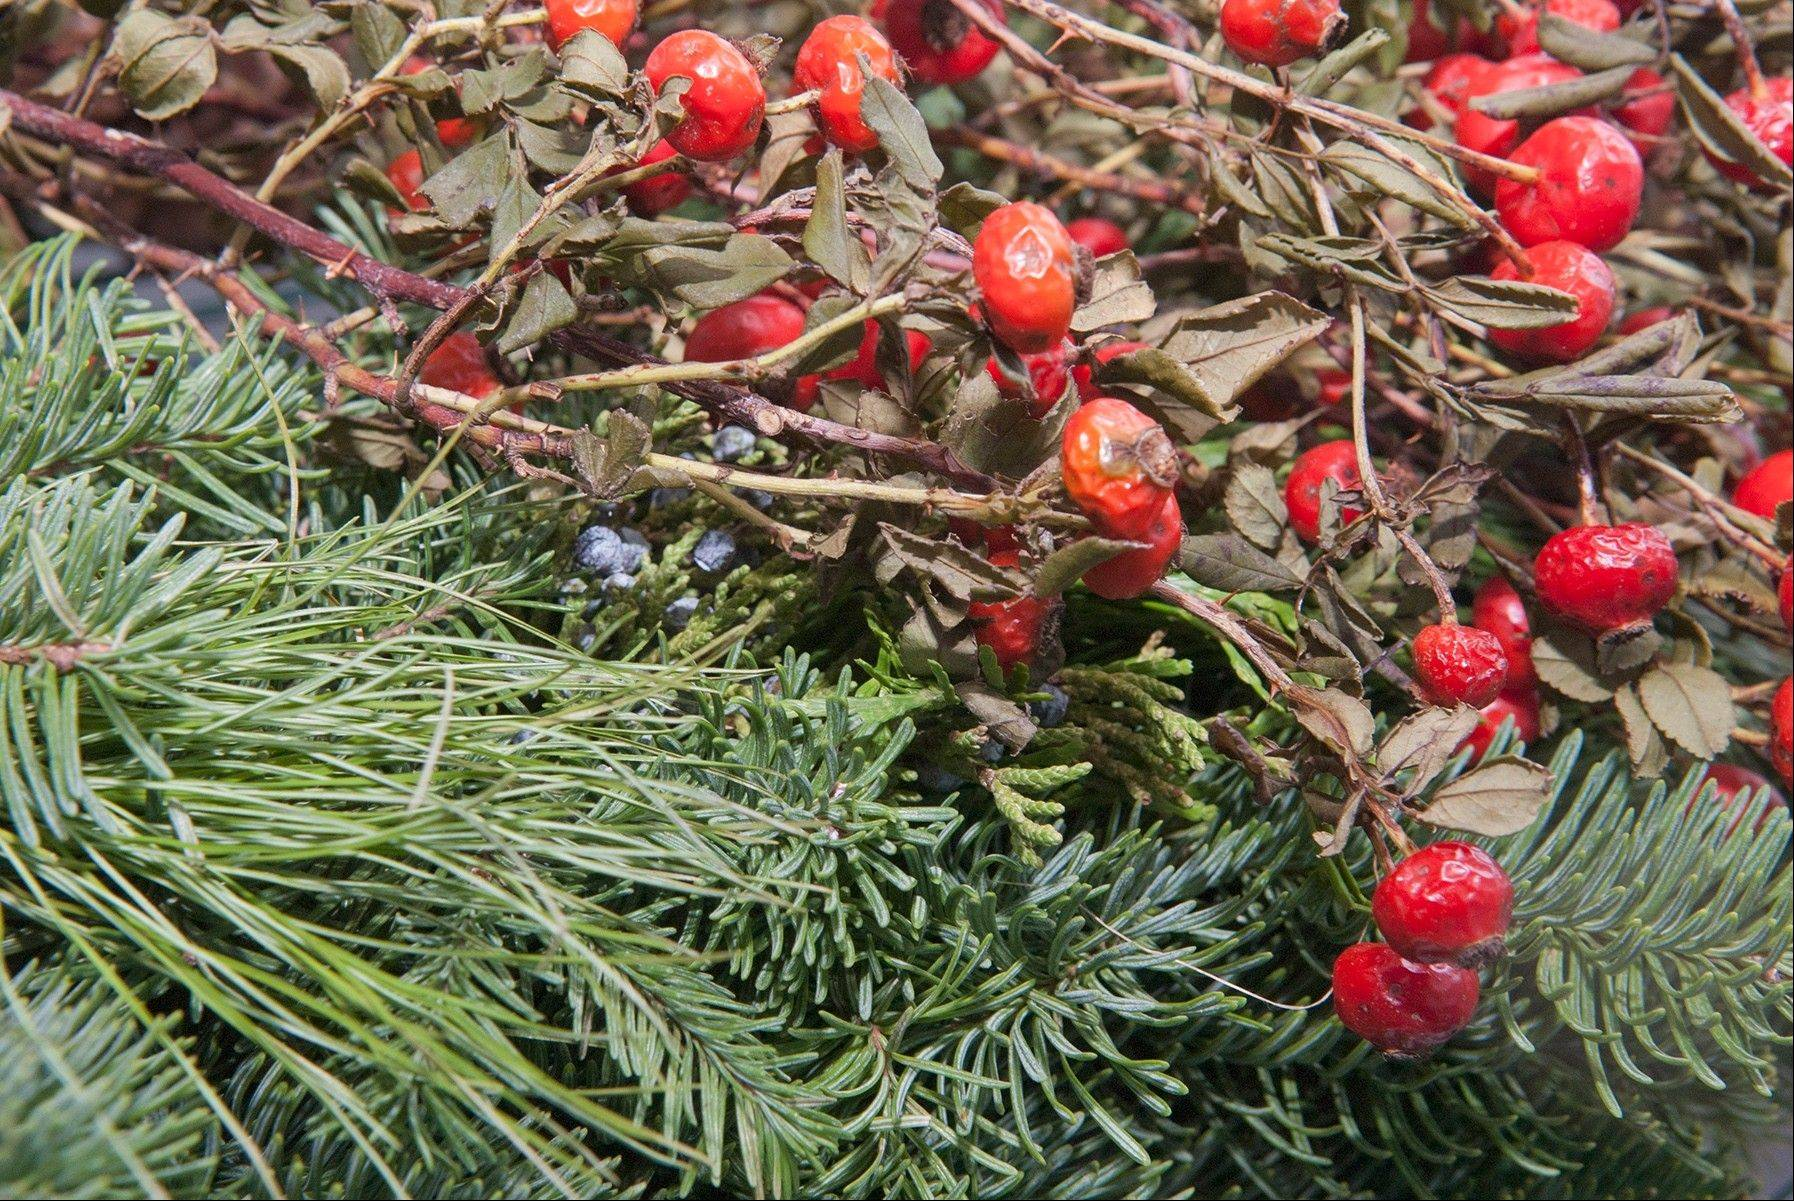 Natural holiday decor can be recycled into your mulch pile. Remember to first remove unnatural items such as tinsel and wire.